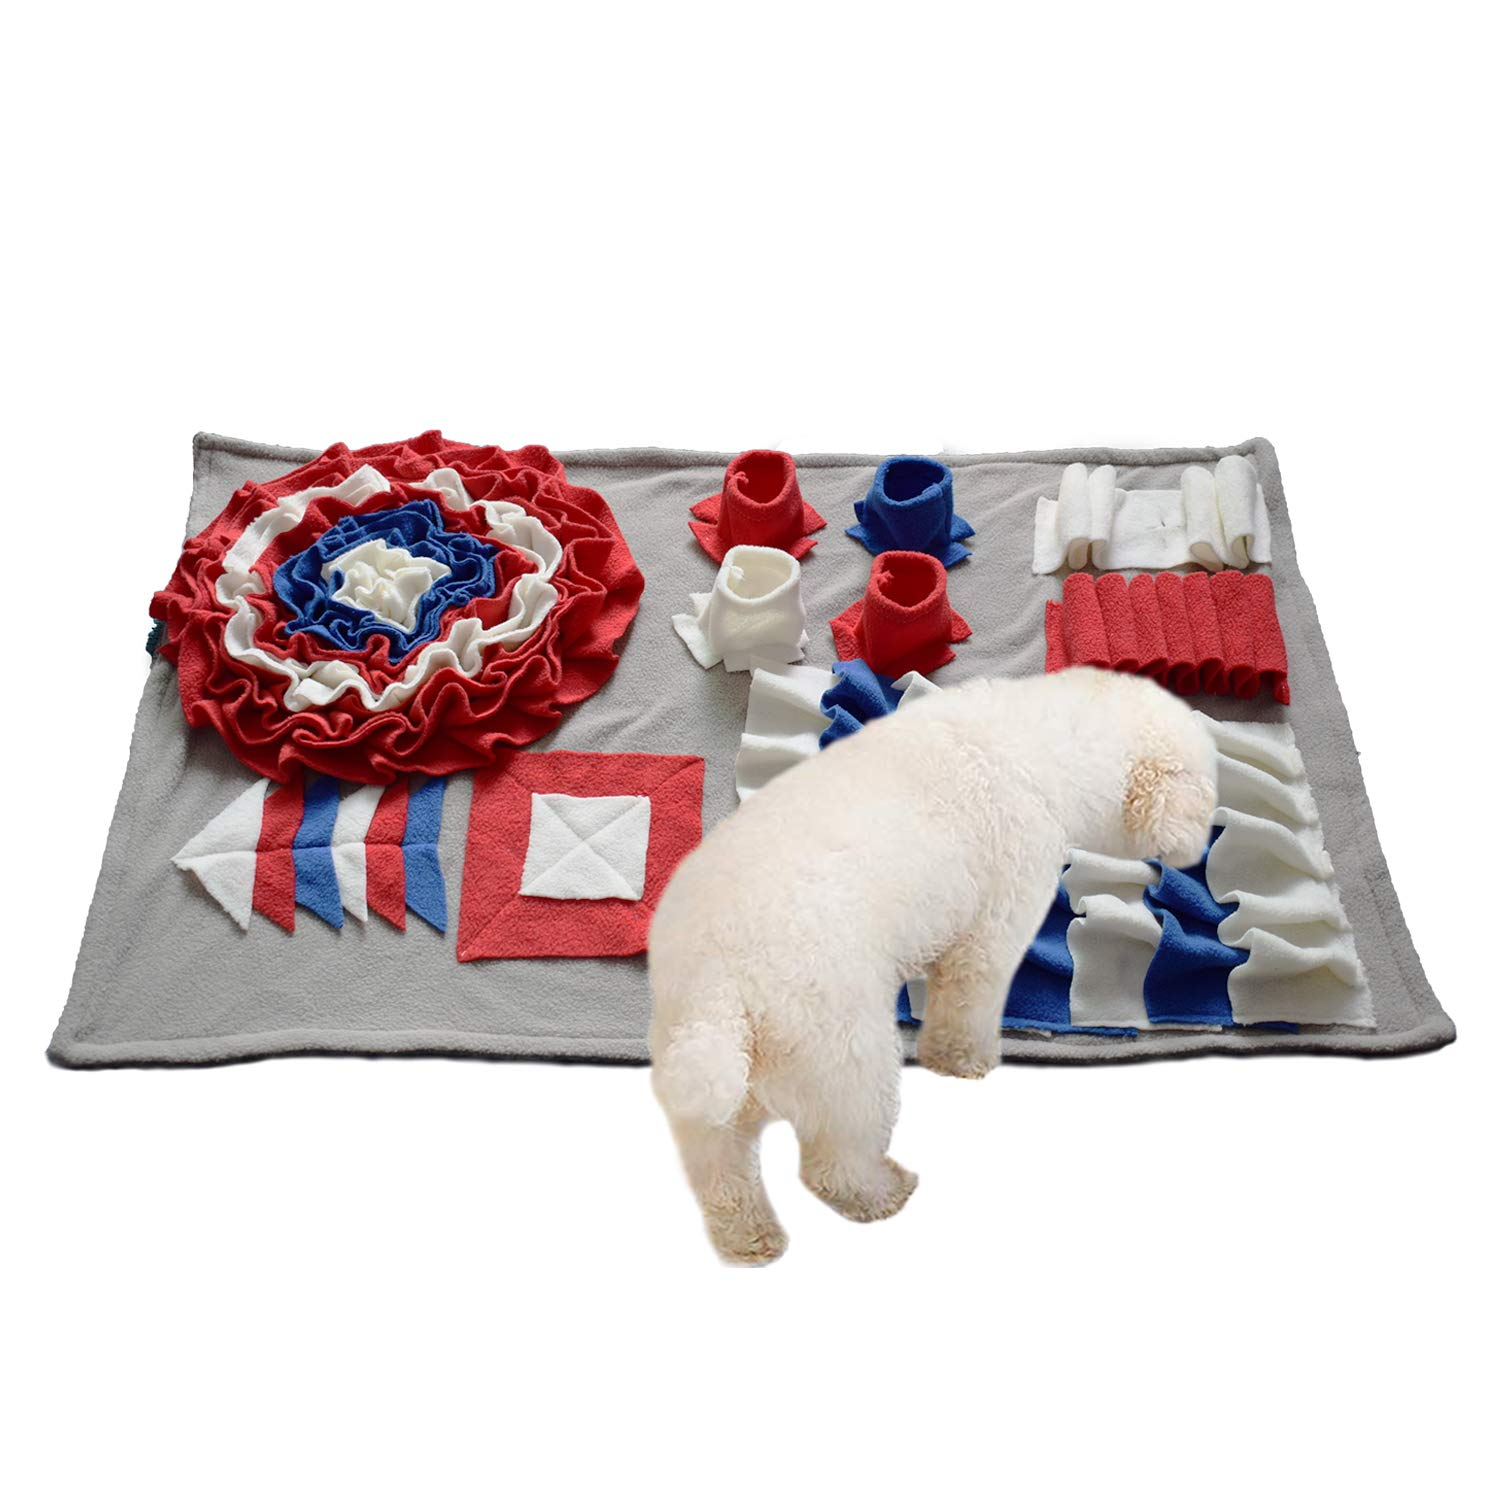 Ali Pet Snuffle Mat, Dog Nosework Blanket, Training Feeding Mat for Dogs(17.7'' x 17.7''), Relieve Stress Mat Pad (Red-M)